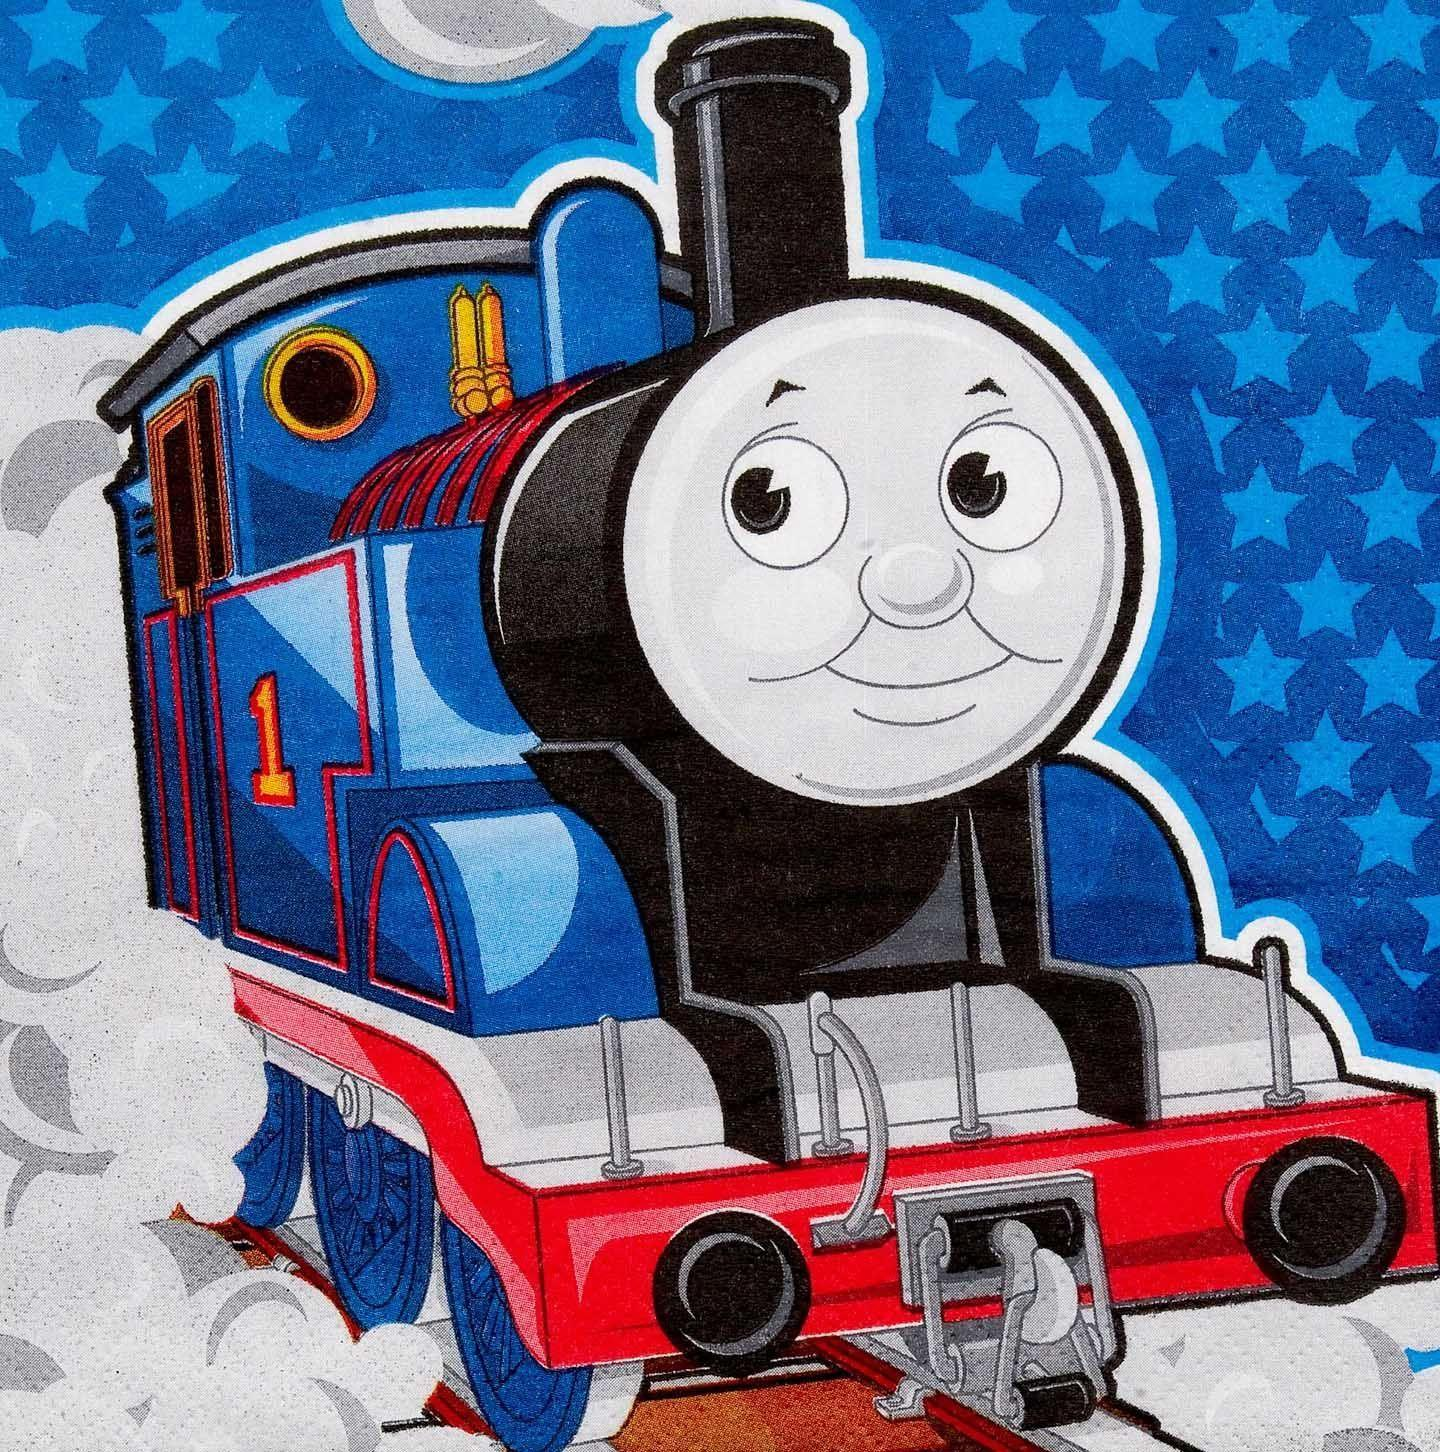 Wallpapers Of Trains: Thomas The Train Wallpapers